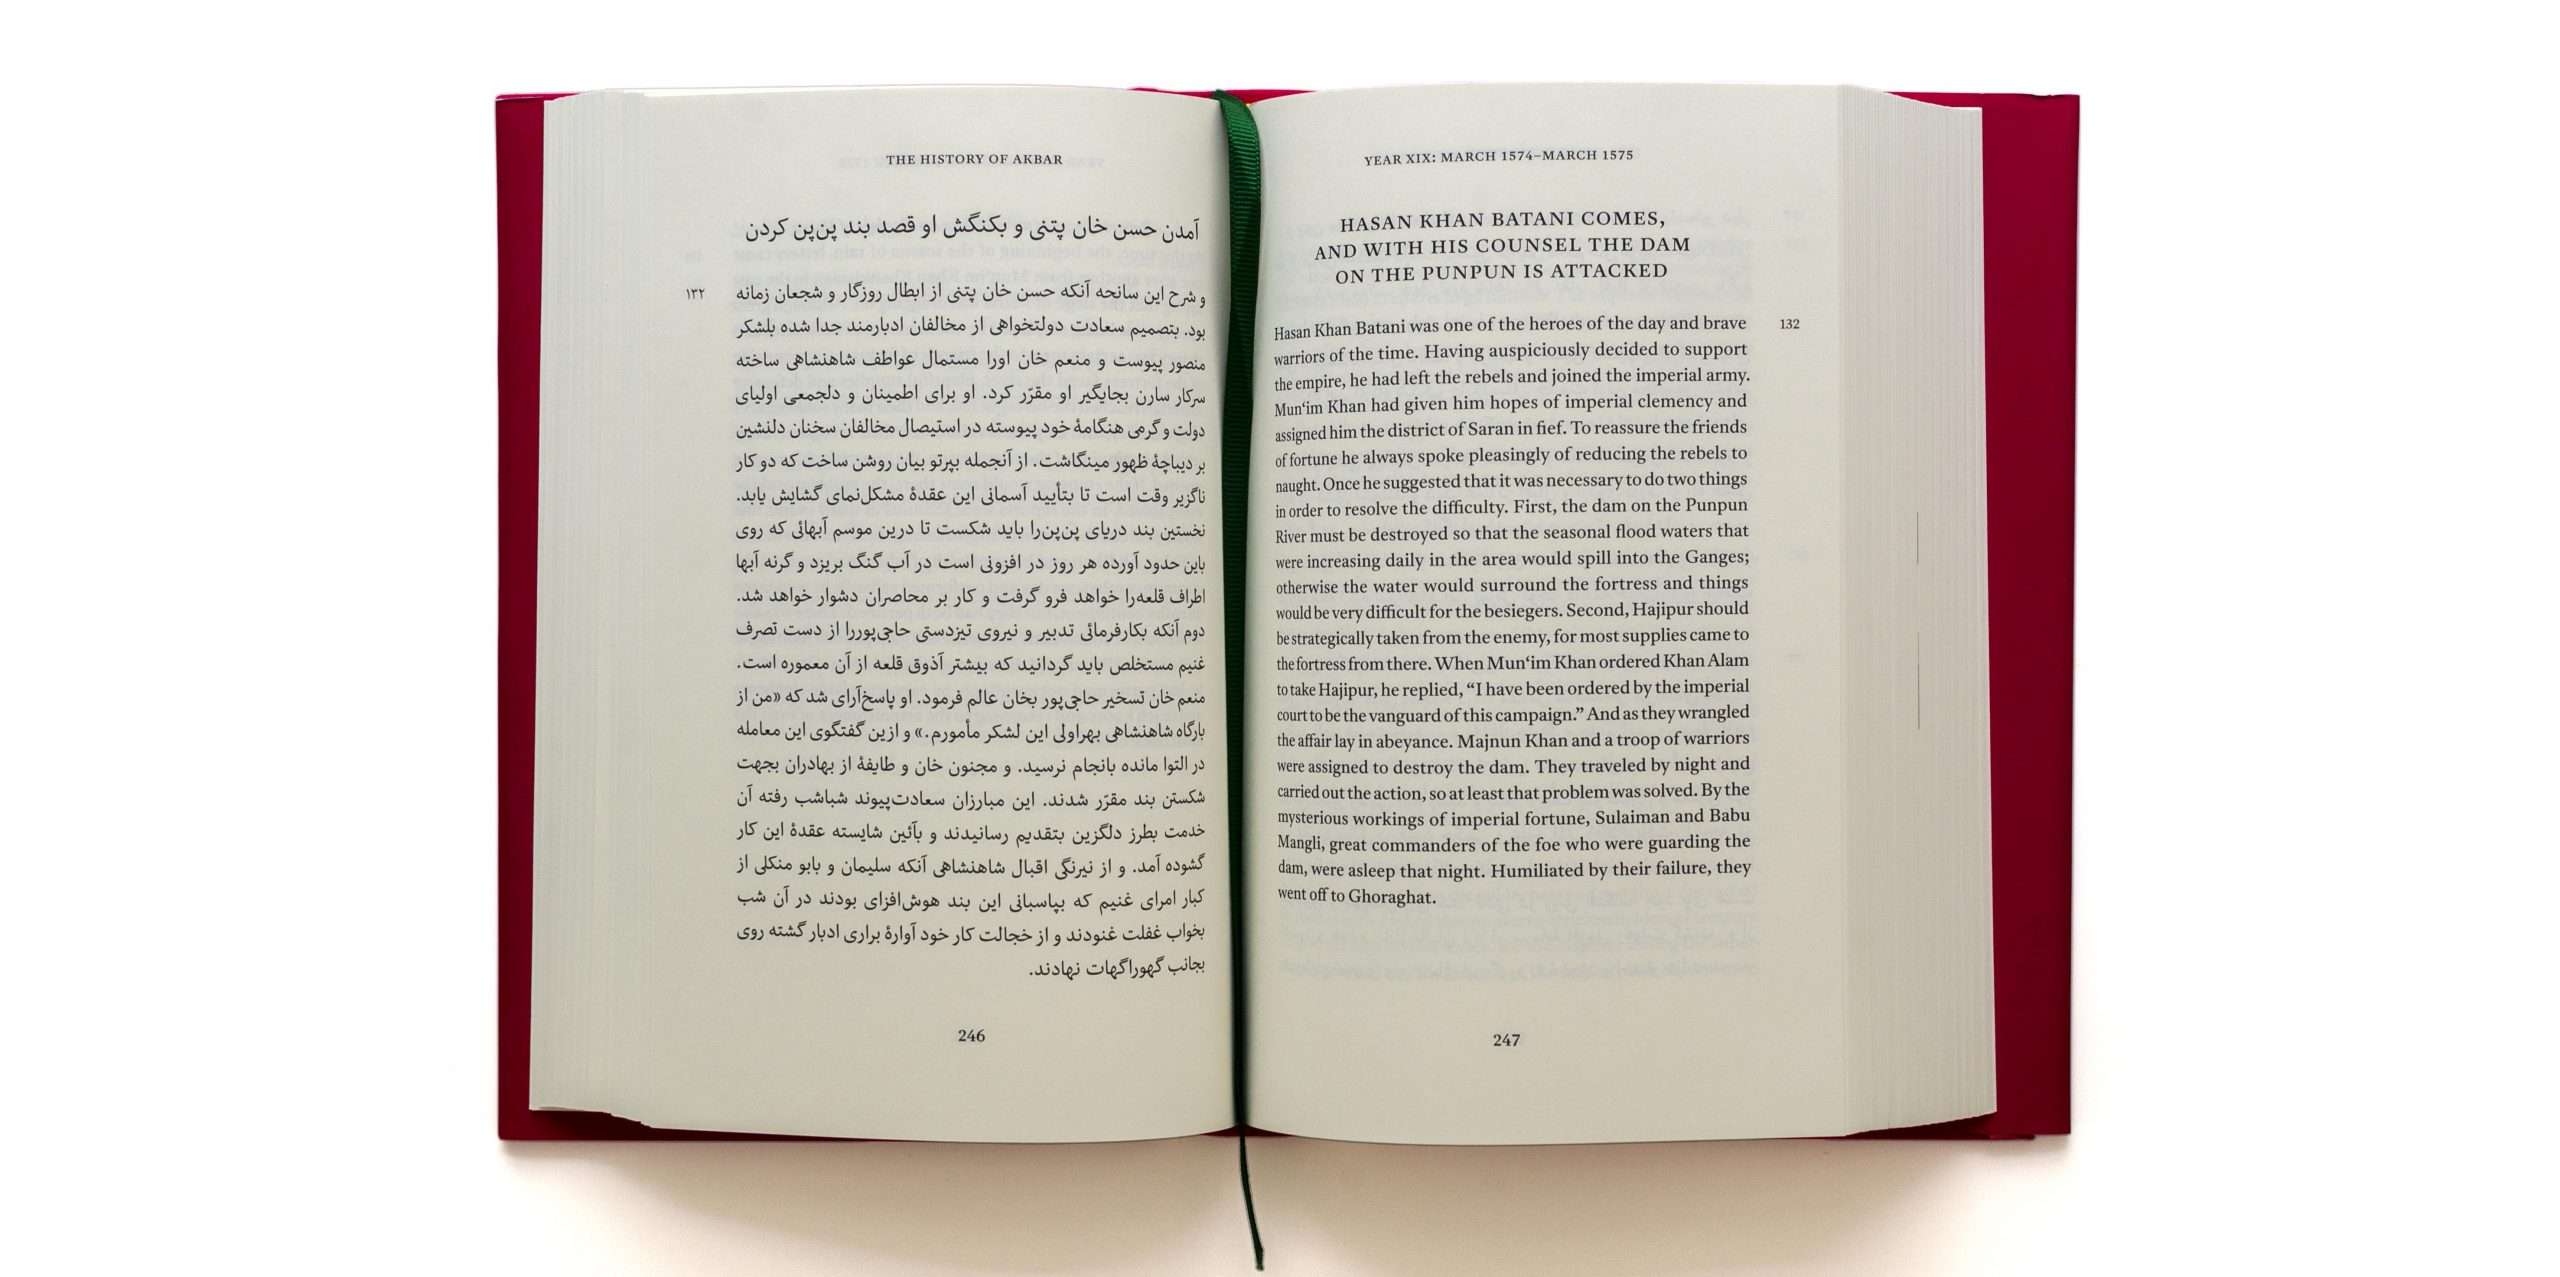 Photo of double page spread of MCLI vol 1 The History of Akbar